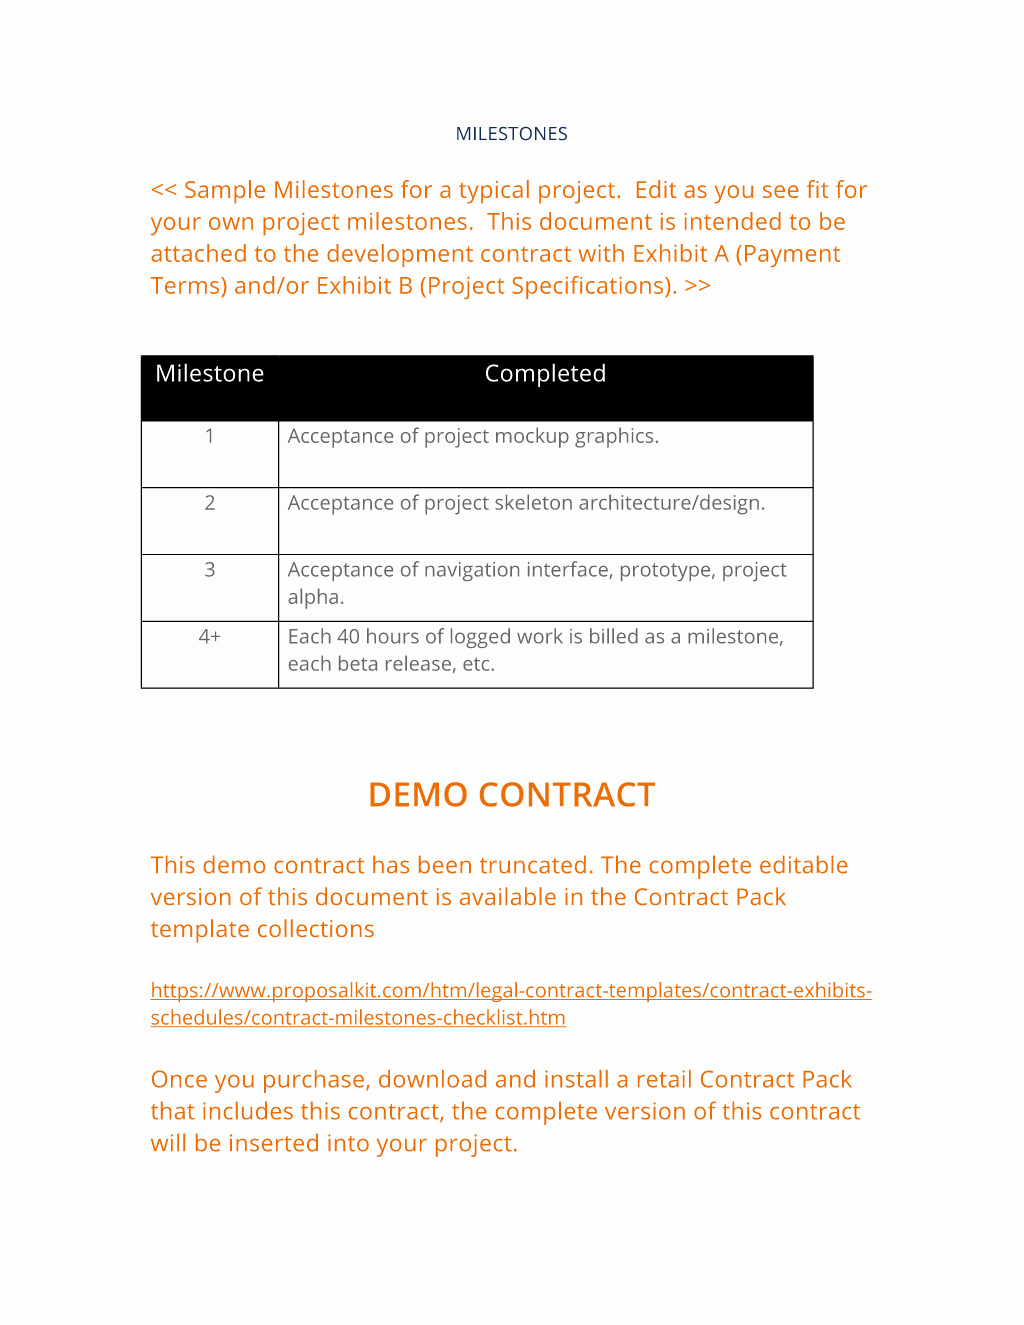 Project Sign Off Template Inspirational How to Write Your Own Contract Milestones Checklist